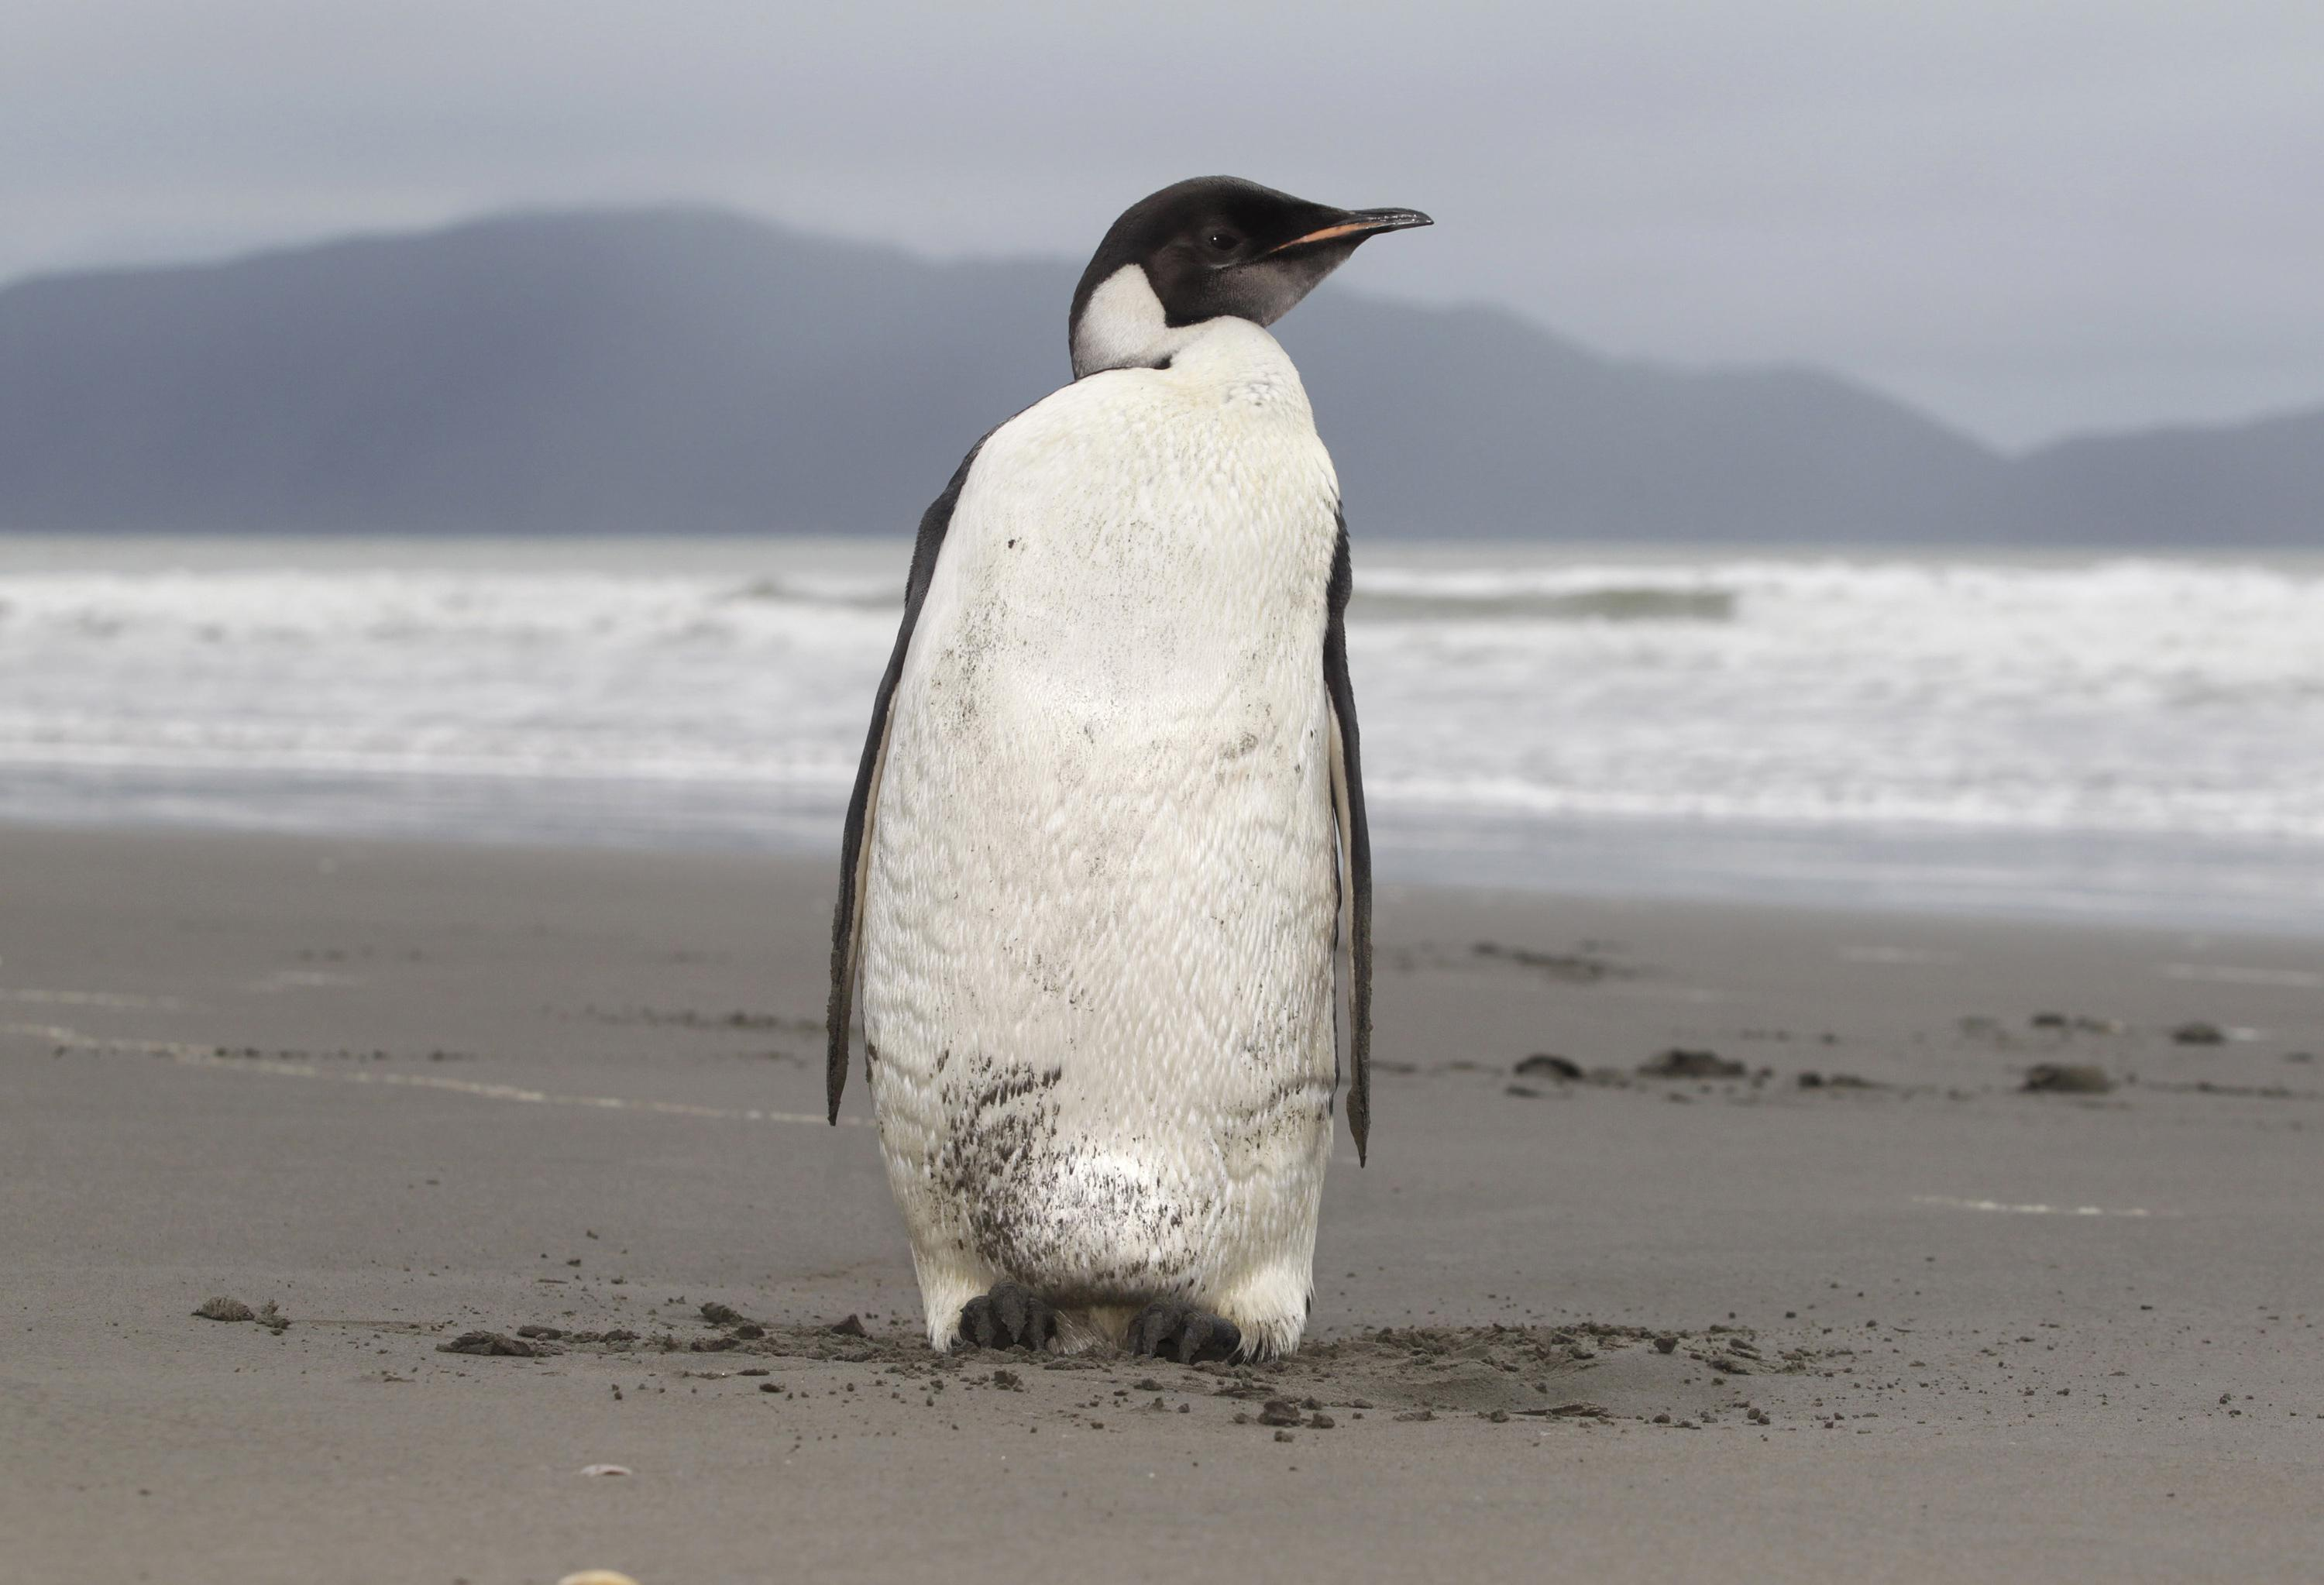 Melting ice imperils 98% of Emperor penguin colonies by 2100